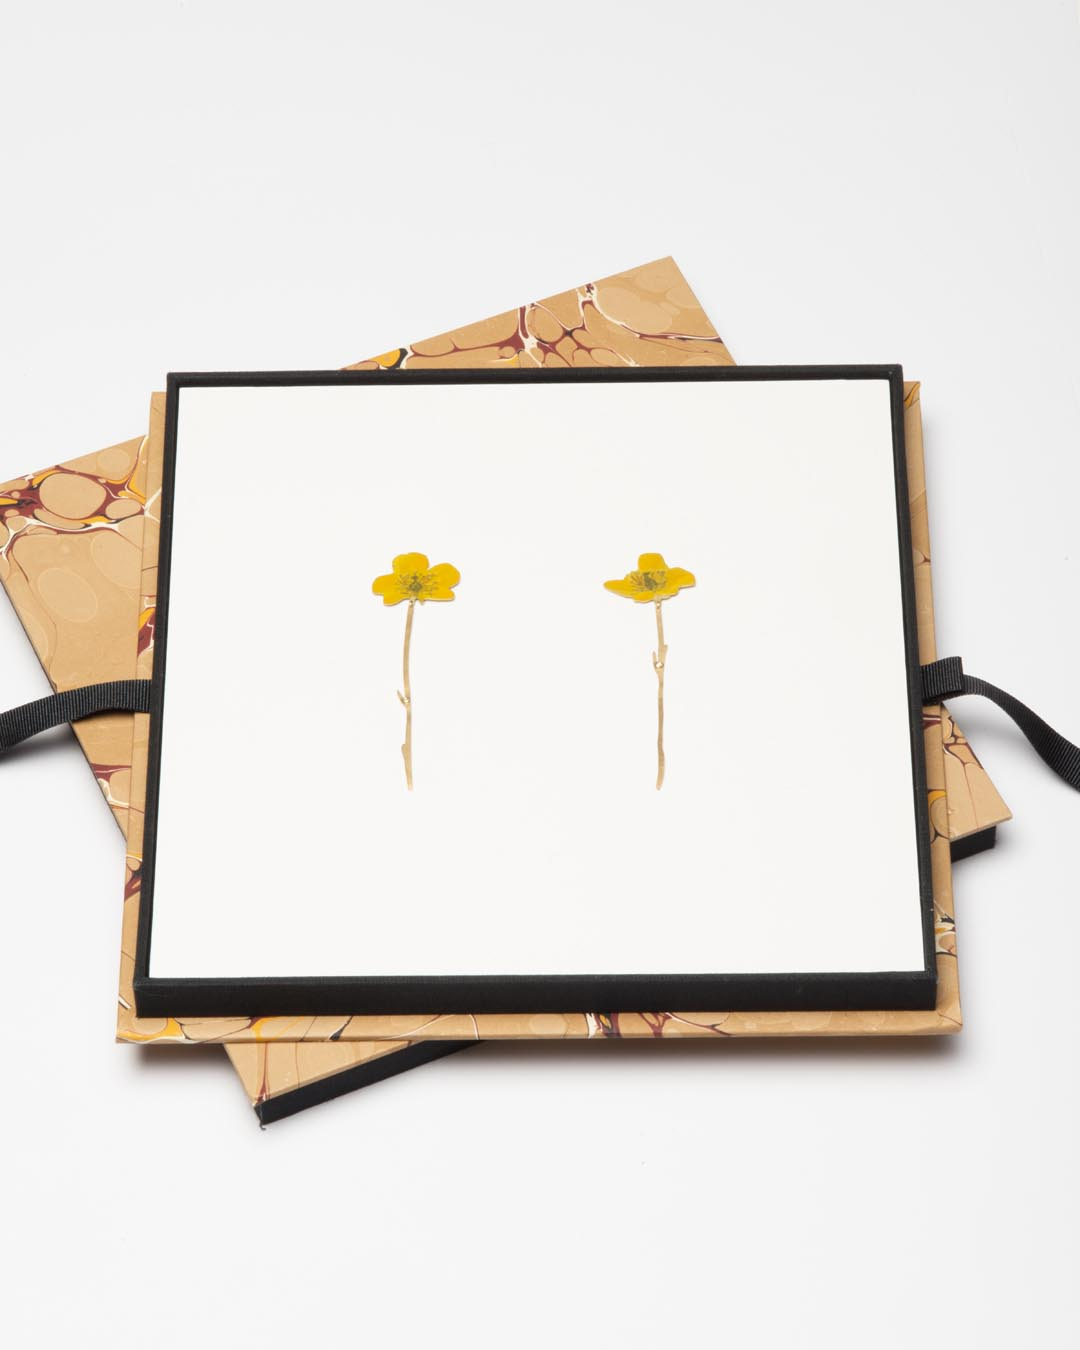 Christopher Thompson Royds, Natura Morta: buttercup, 2019, drop earrings; 18ct gold, hand-painted, diamonds, 70 x 20 mm, €1750 (image 1/2)